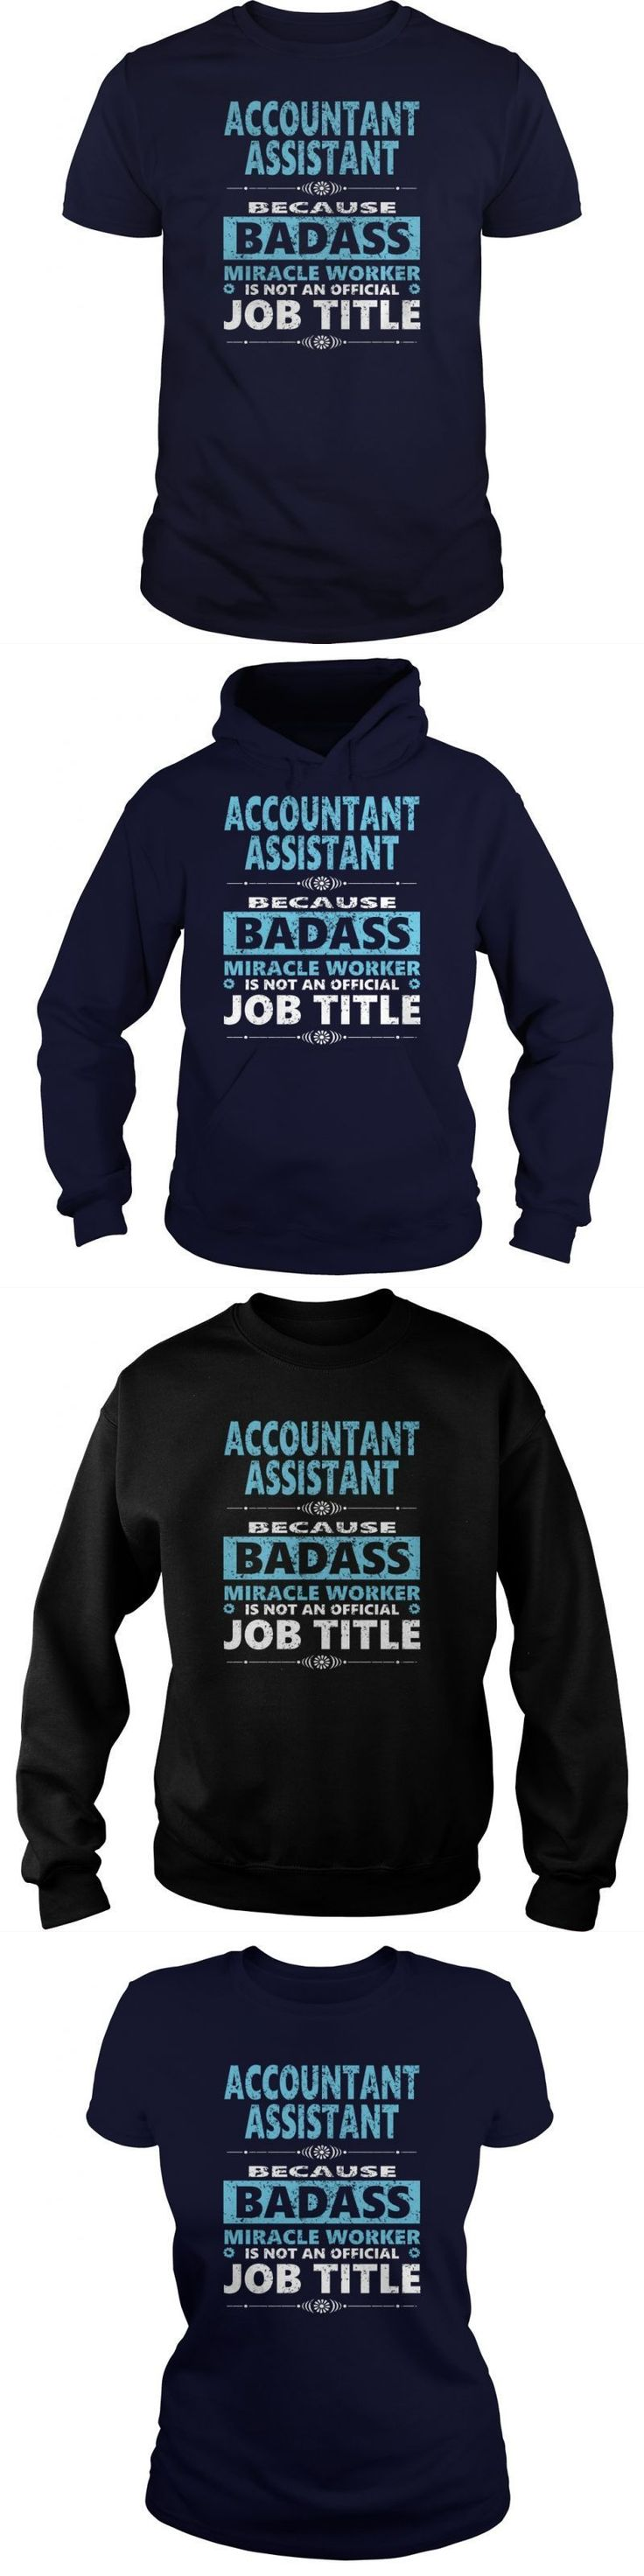 ACCOUNTANT ASSISTANT JOBS T-SHIRT GUYS LADIES YOUTH TEE HOODIE SWEAT SHIRT V-NECK UNISEX SUNFROG BESTSELLER...FIND YOUR JOB HERE:    https://www.sunfrog.com/Jobs/?45454     Guys Tee Hoodie Sweat Shirt Ladies Tee Youth Tee Guys V-Neck Ladies V-Neck Unisex Tank Top Unisex Longsleeve Tee i'm an accountant t shirt accountant t-shirt accountant t shirt i'm an accountant t-shirt